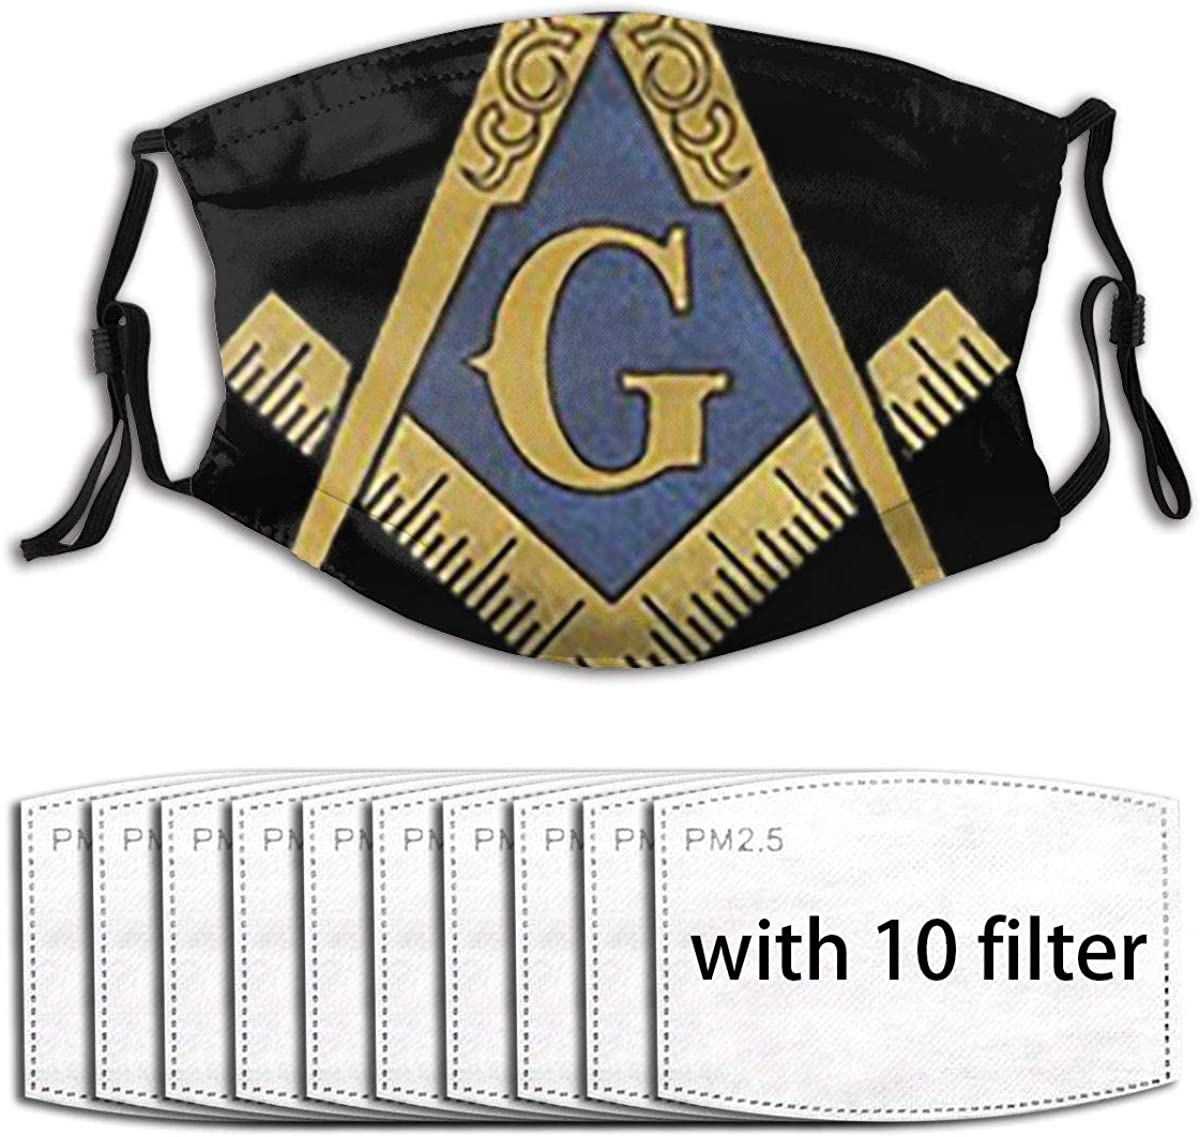 Freemason Face Mask Fashion Scarves Uv Protection Waterproof Breathable With 6 Filter